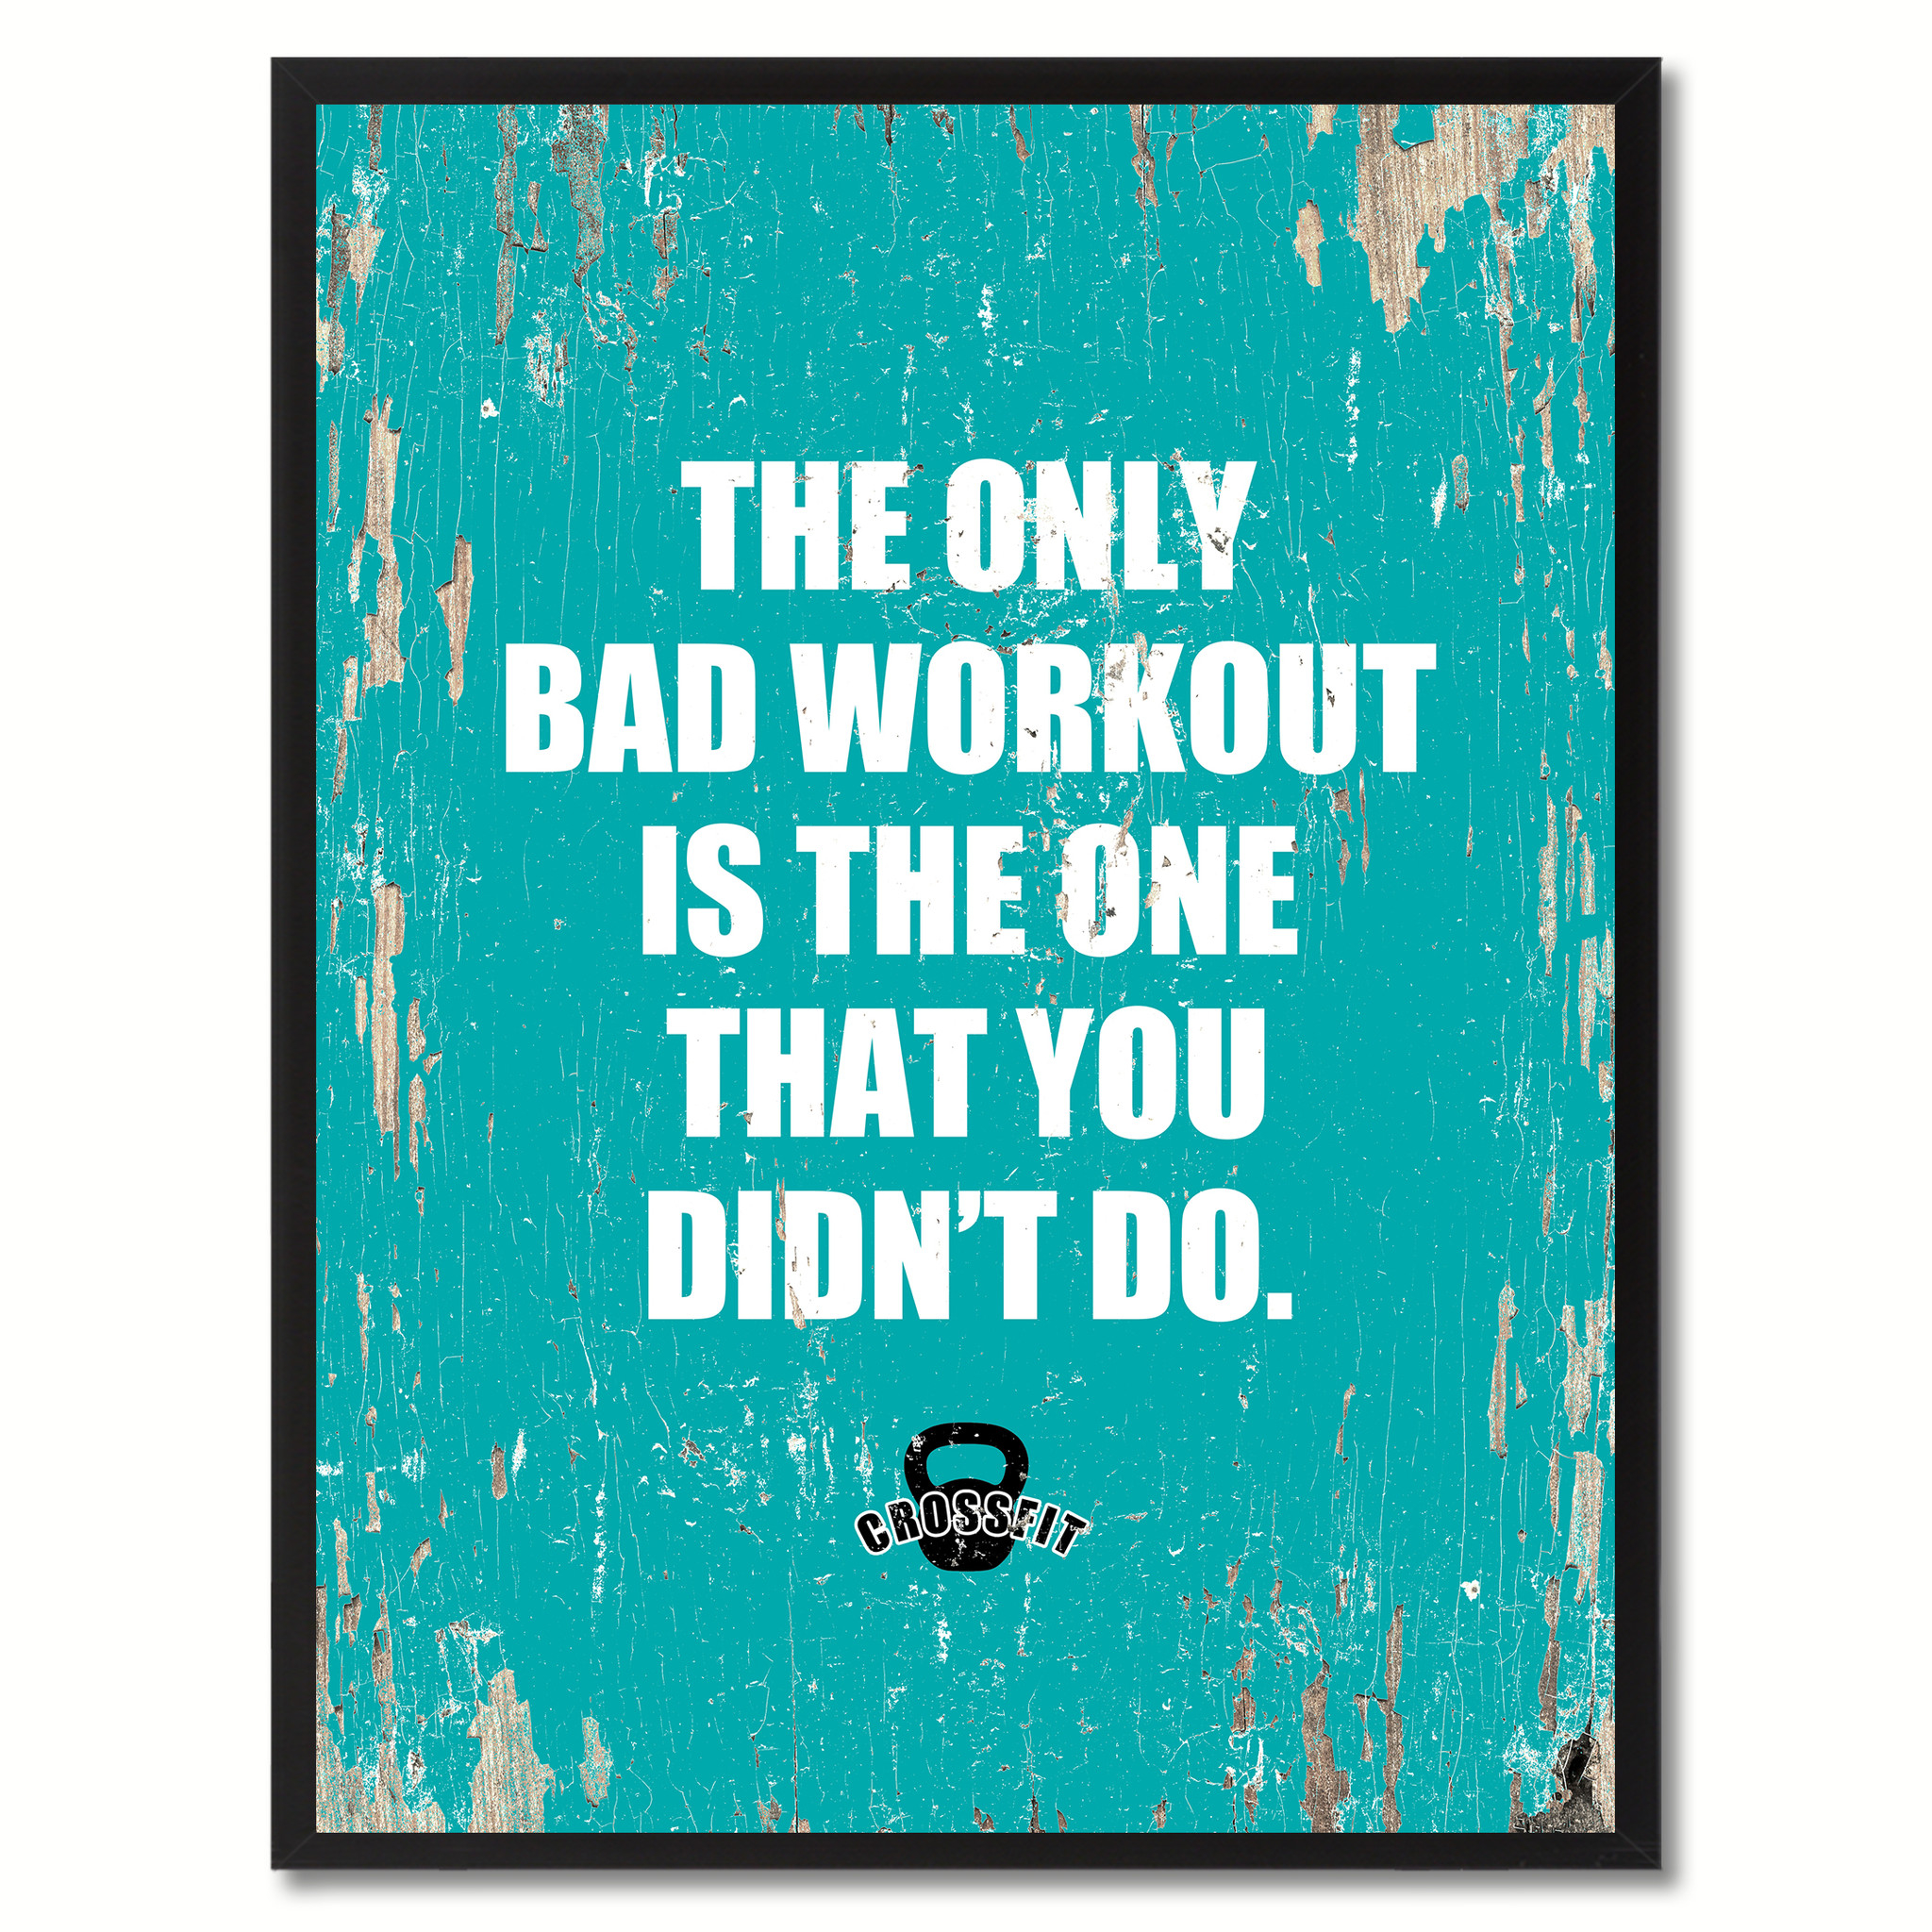 "The Only Bad Workout Is The One That Yot Didn't Do Saying Canvas Print, Black Picture Frame Home Decor Wall Art Gifts - 7""x9\"""